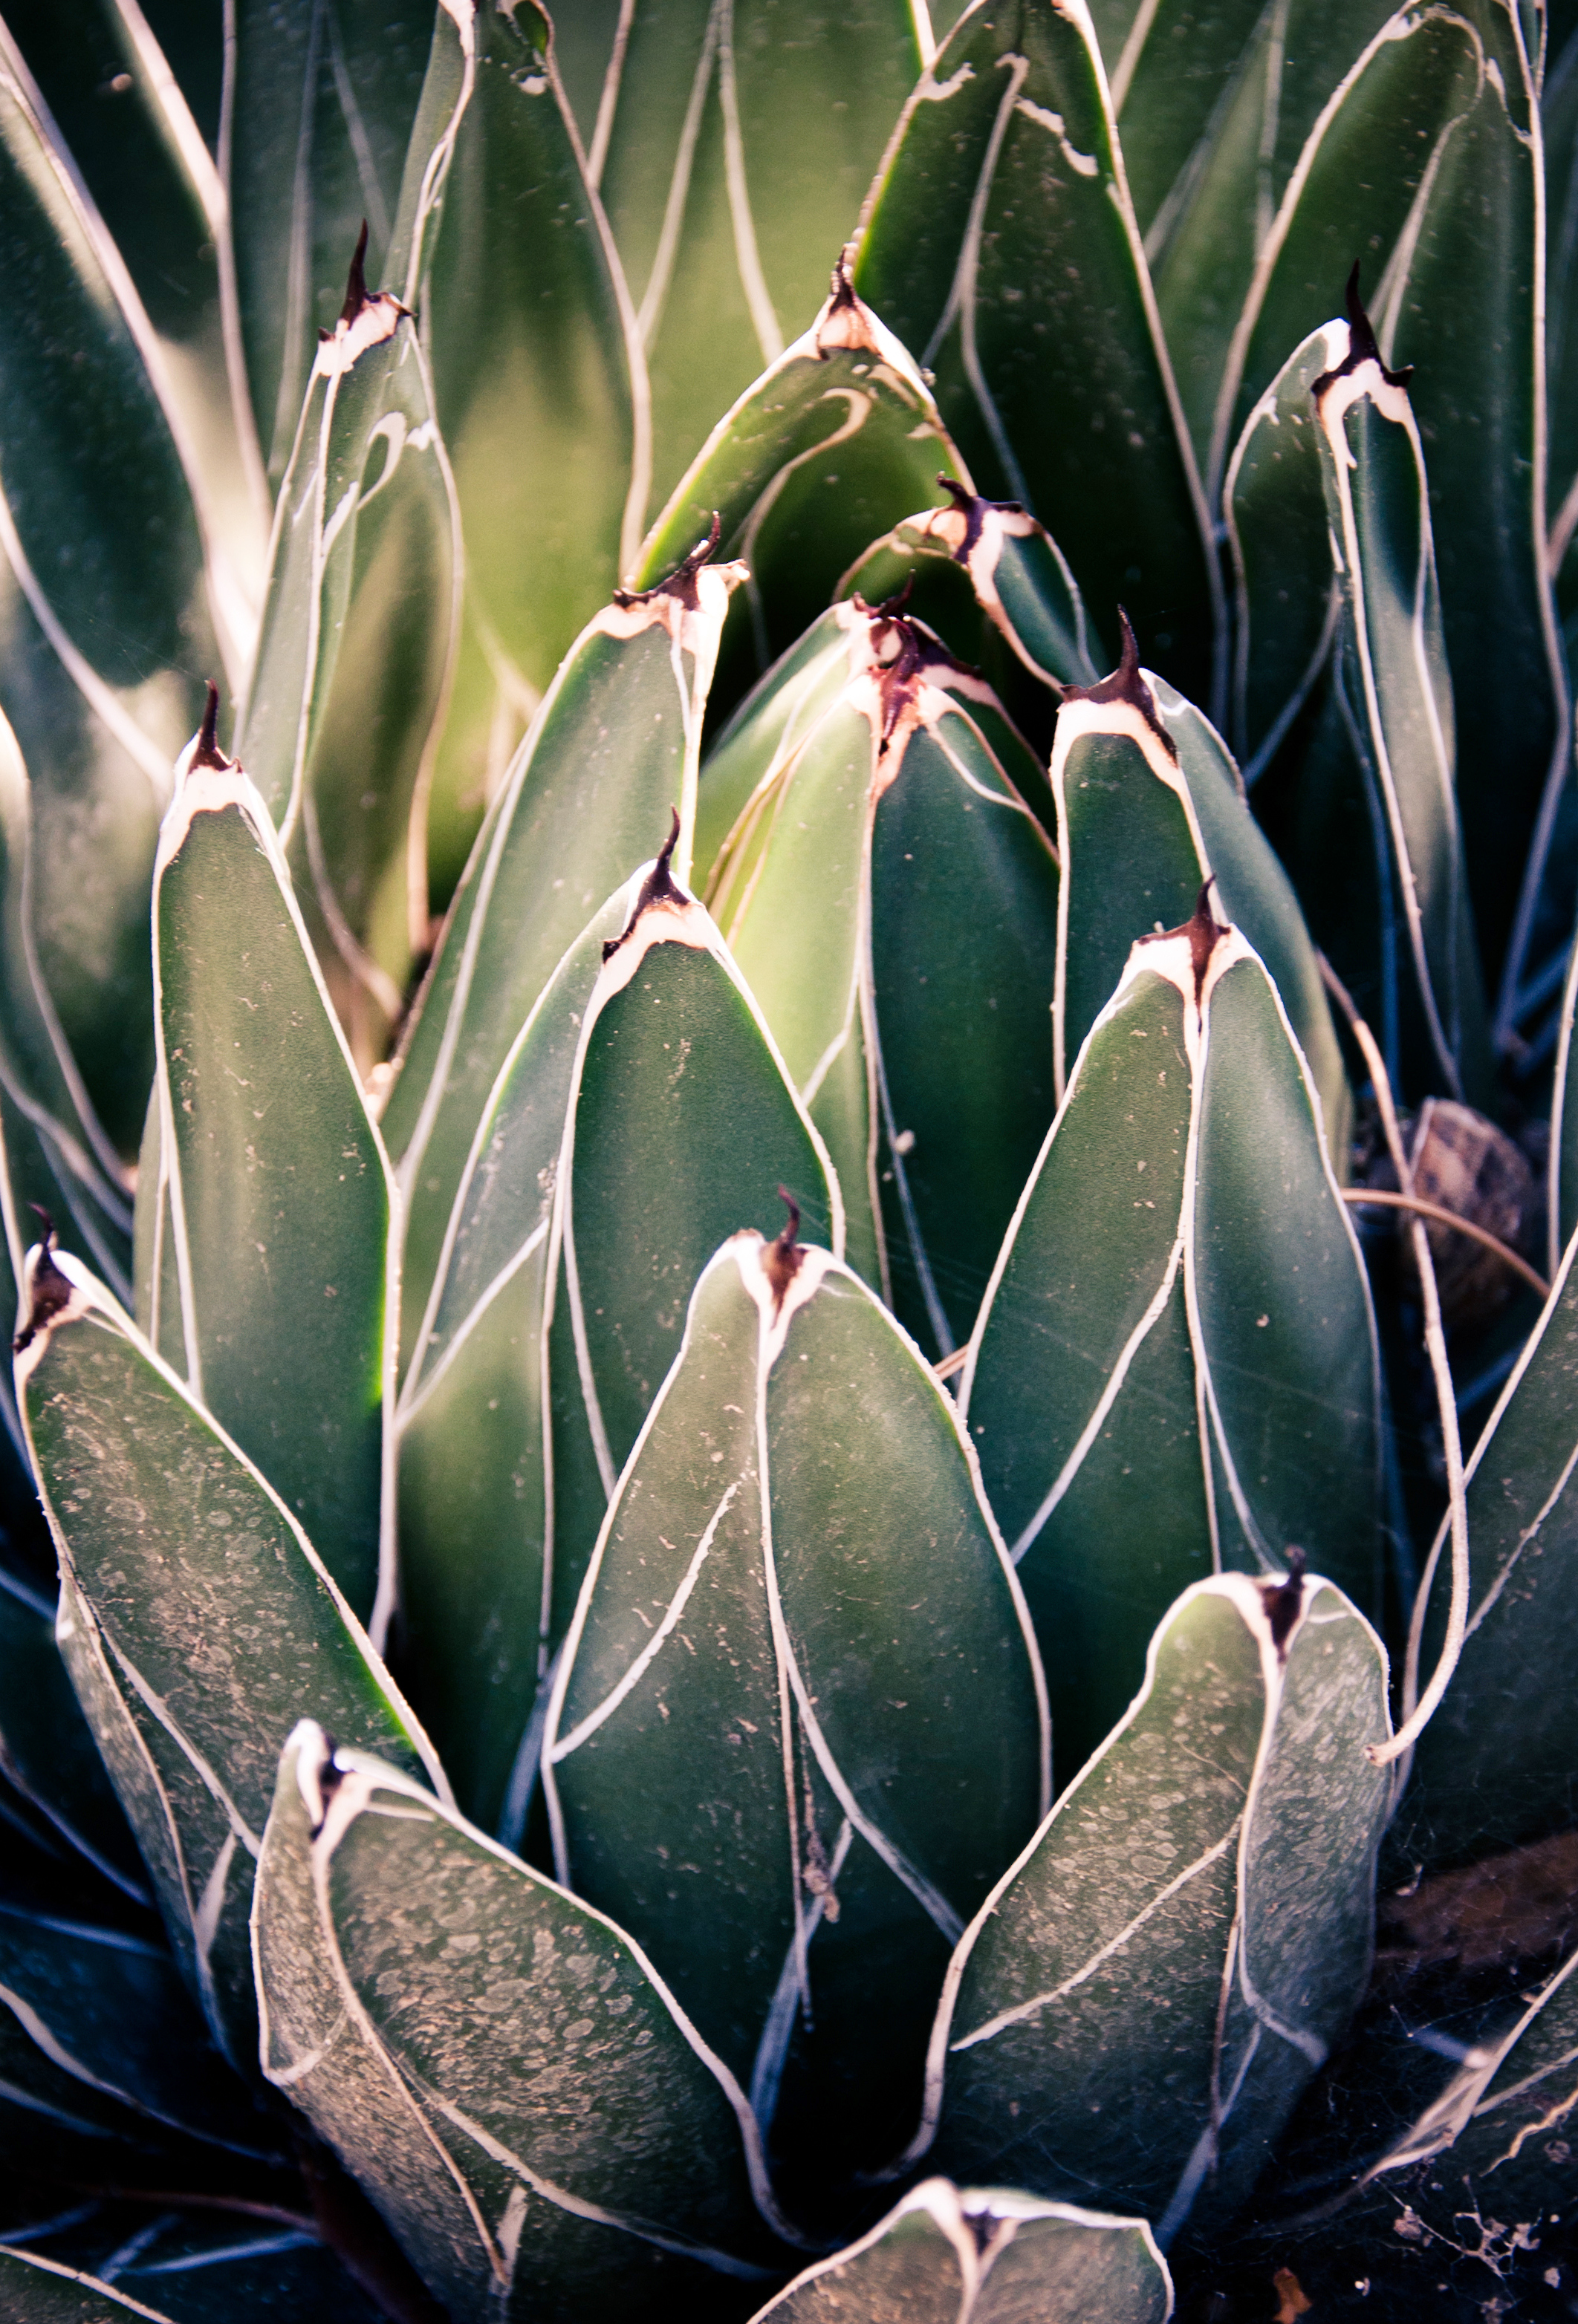 Sharp pointed agave cactus, Agave, Single, Mojave, Natural, HQ Photo